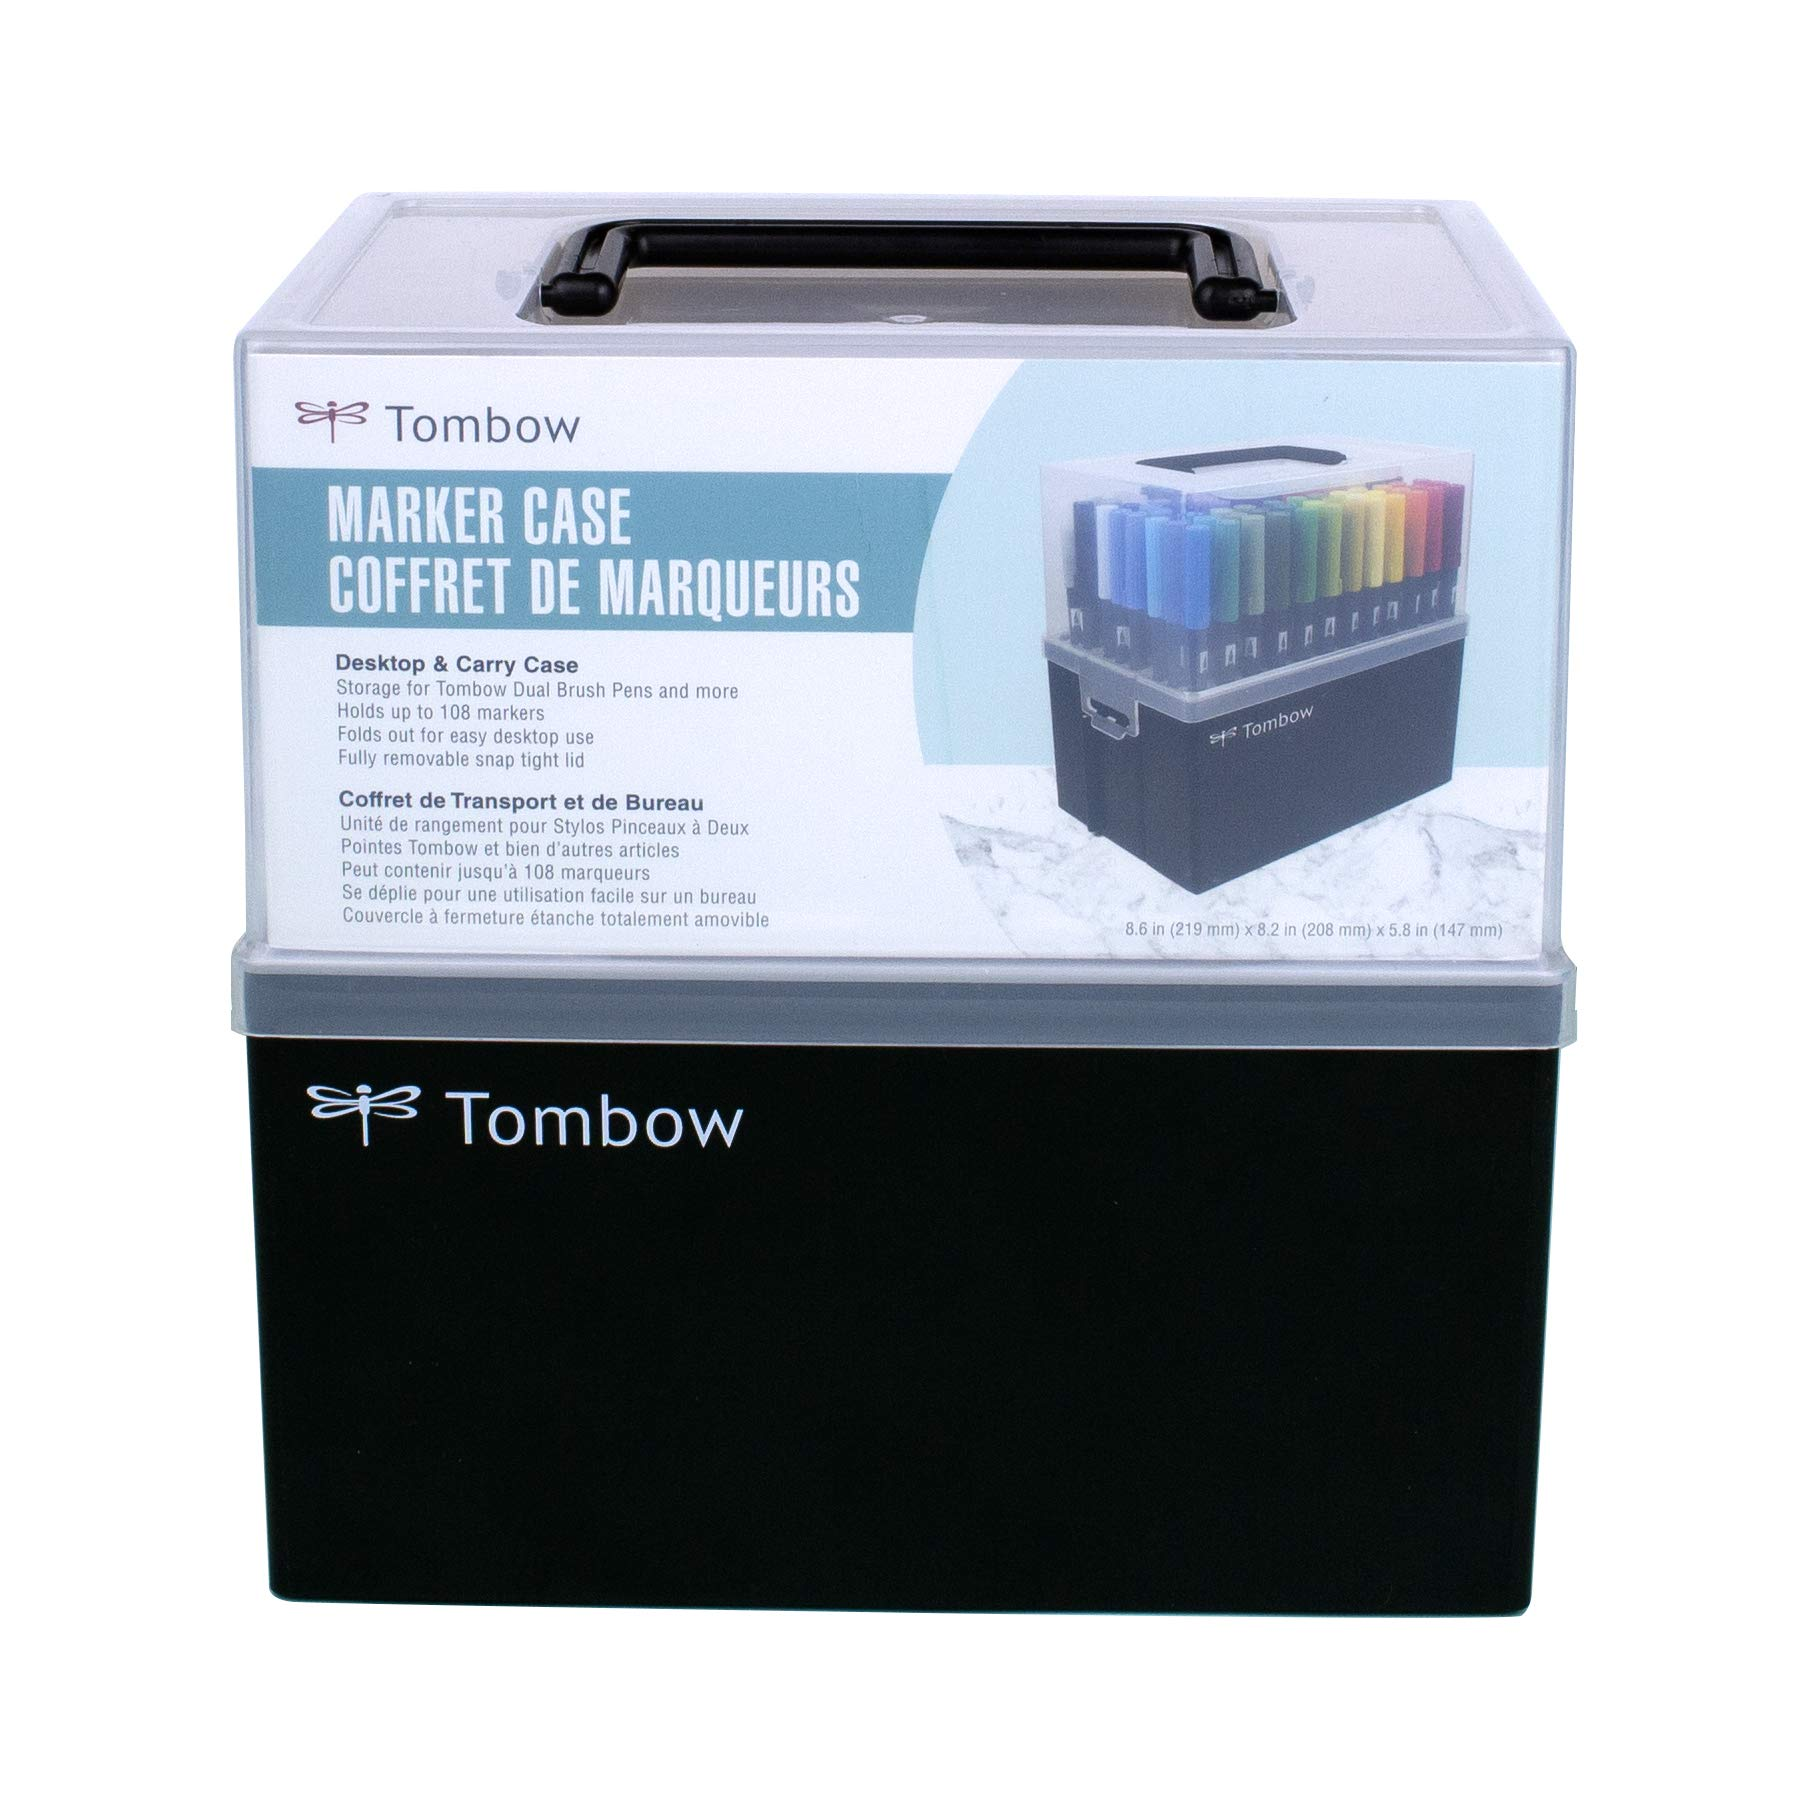 Tombow 56178 Marker Case. Easily Stores and Organizes 108 of Your Favorite Tombow Products